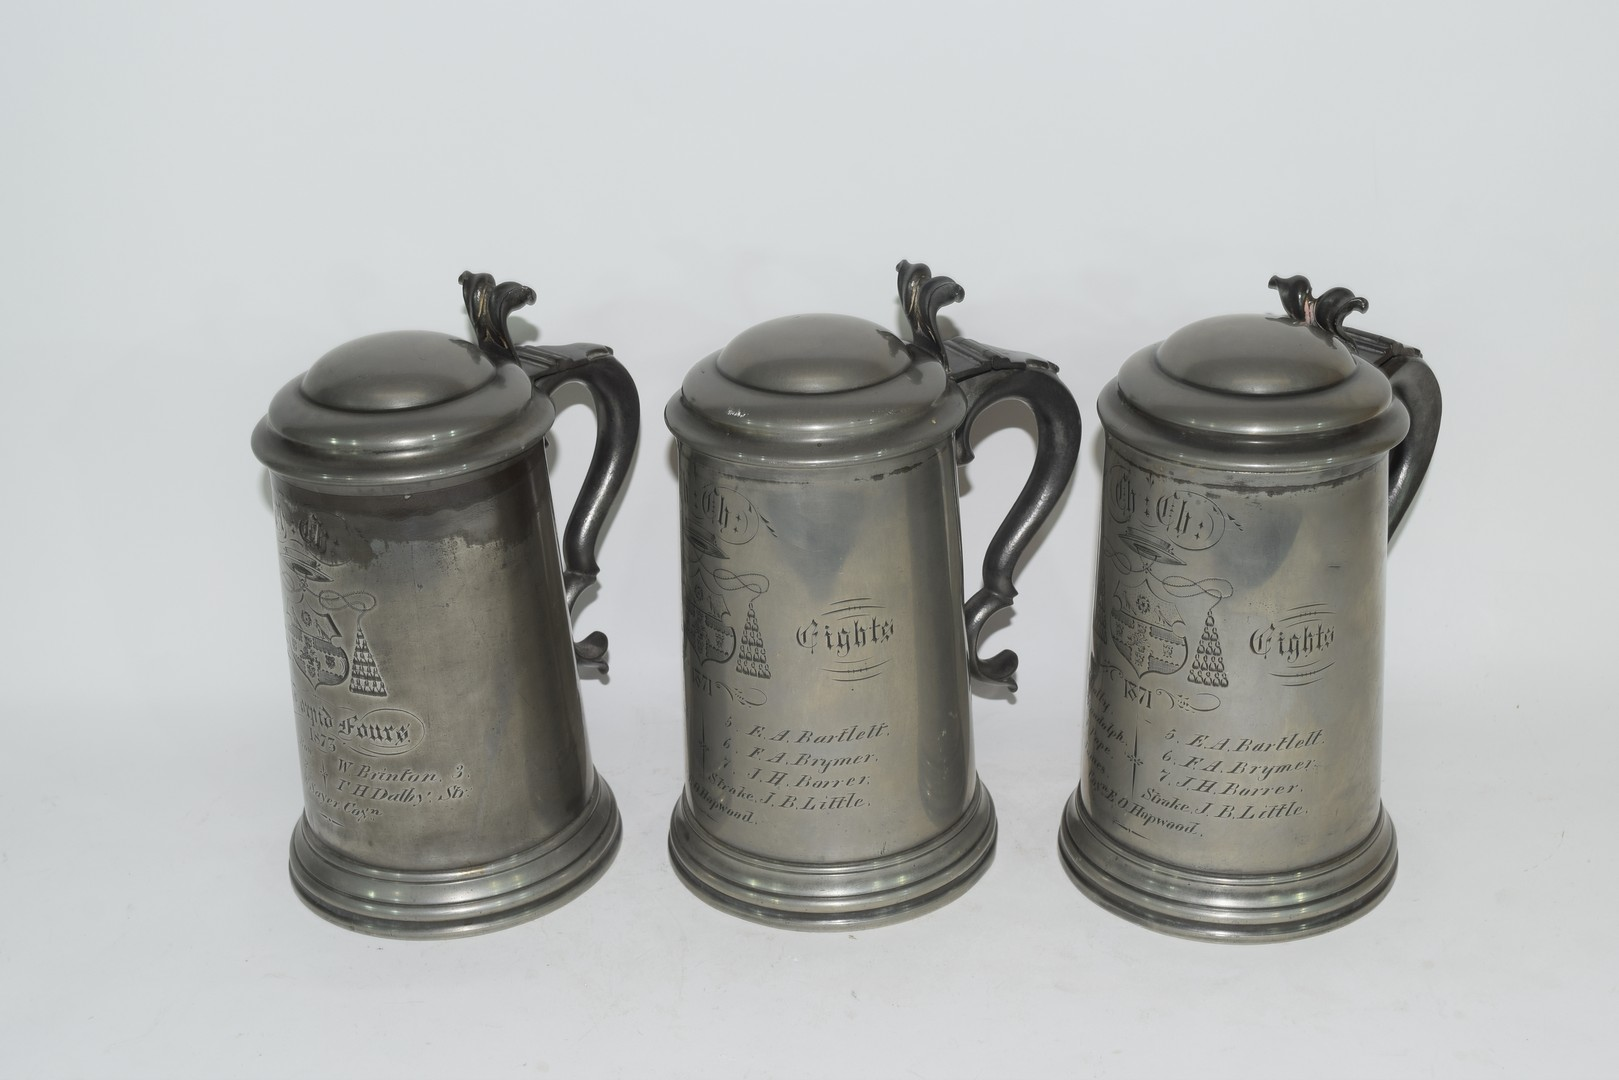 Three pewter tankards from Christchurch College, Oxford